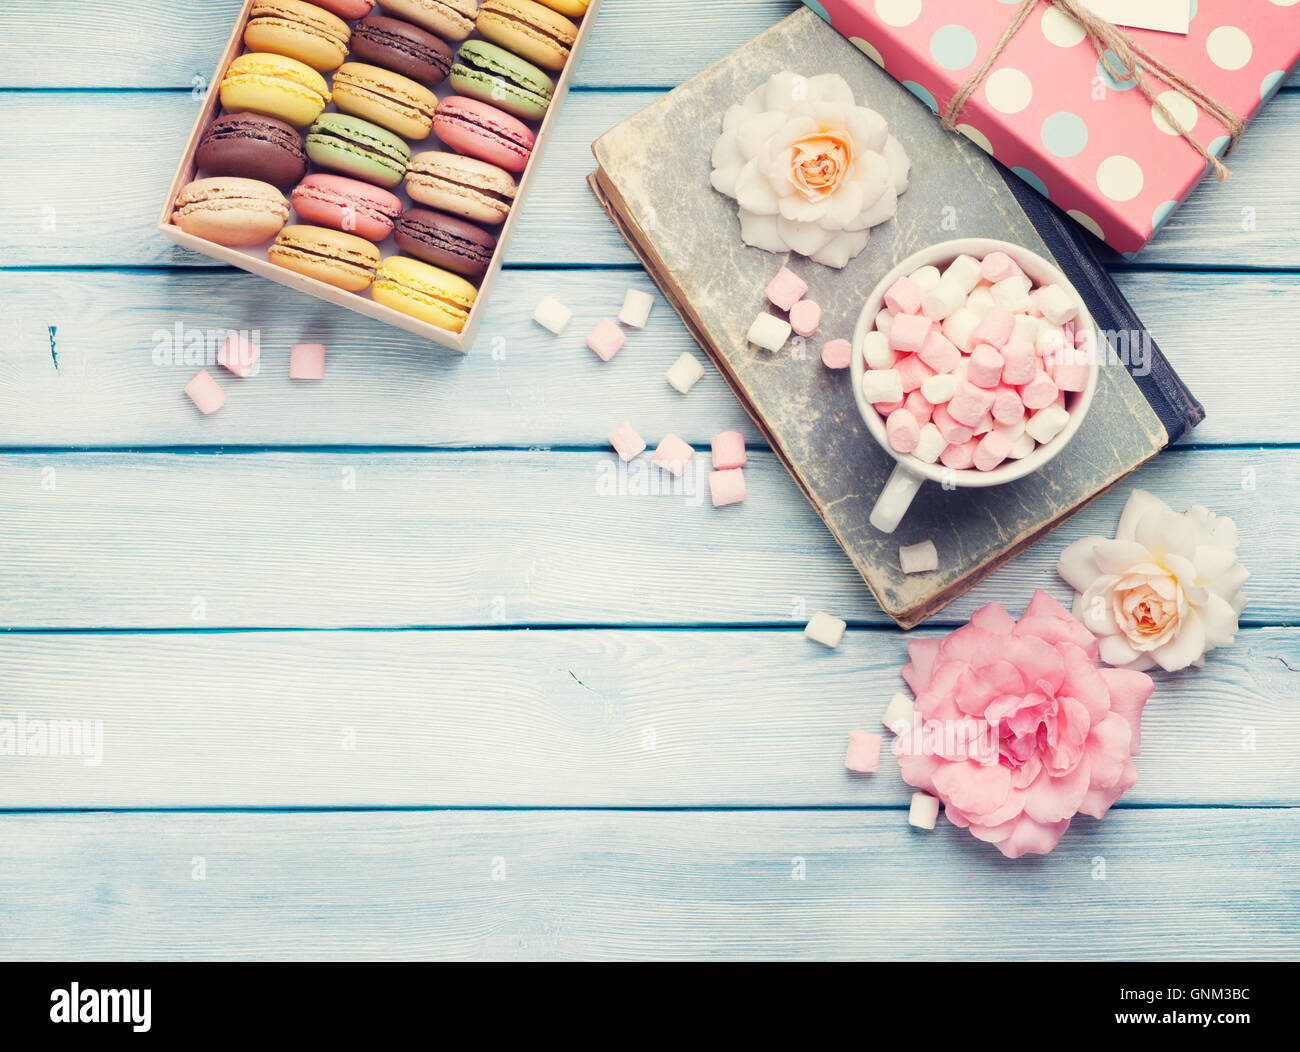 Colorful macaroons in a gift box and marshmallow in coffee cup on wooden table. Sweet macarons and flowers. Top - Stock Image